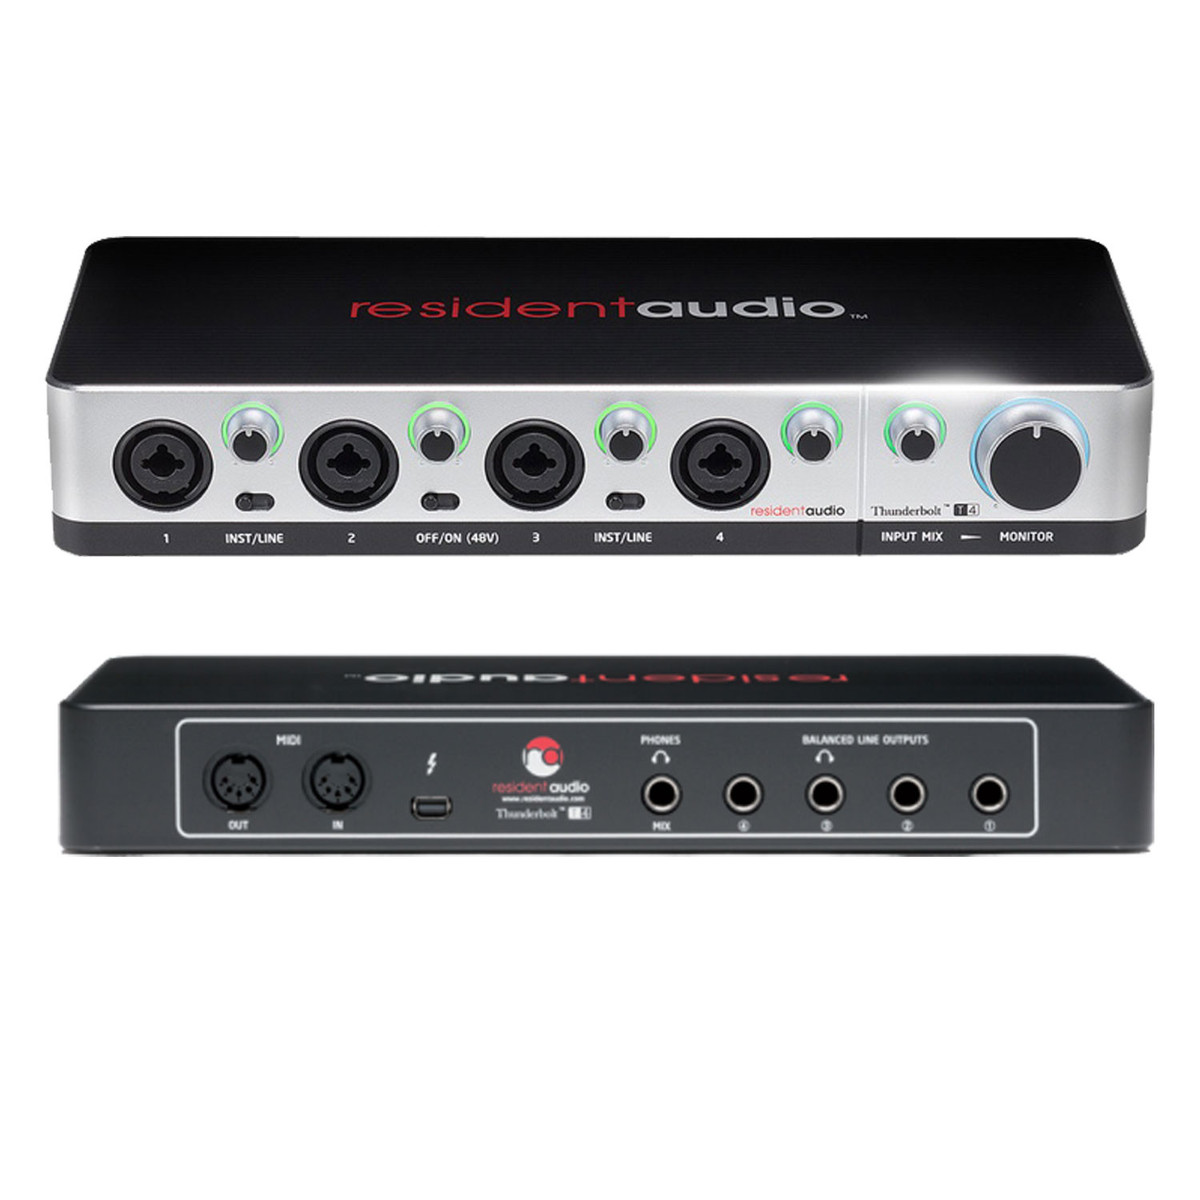 resident audio t4 thunderbolt audio interface at gear4music. Black Bedroom Furniture Sets. Home Design Ideas